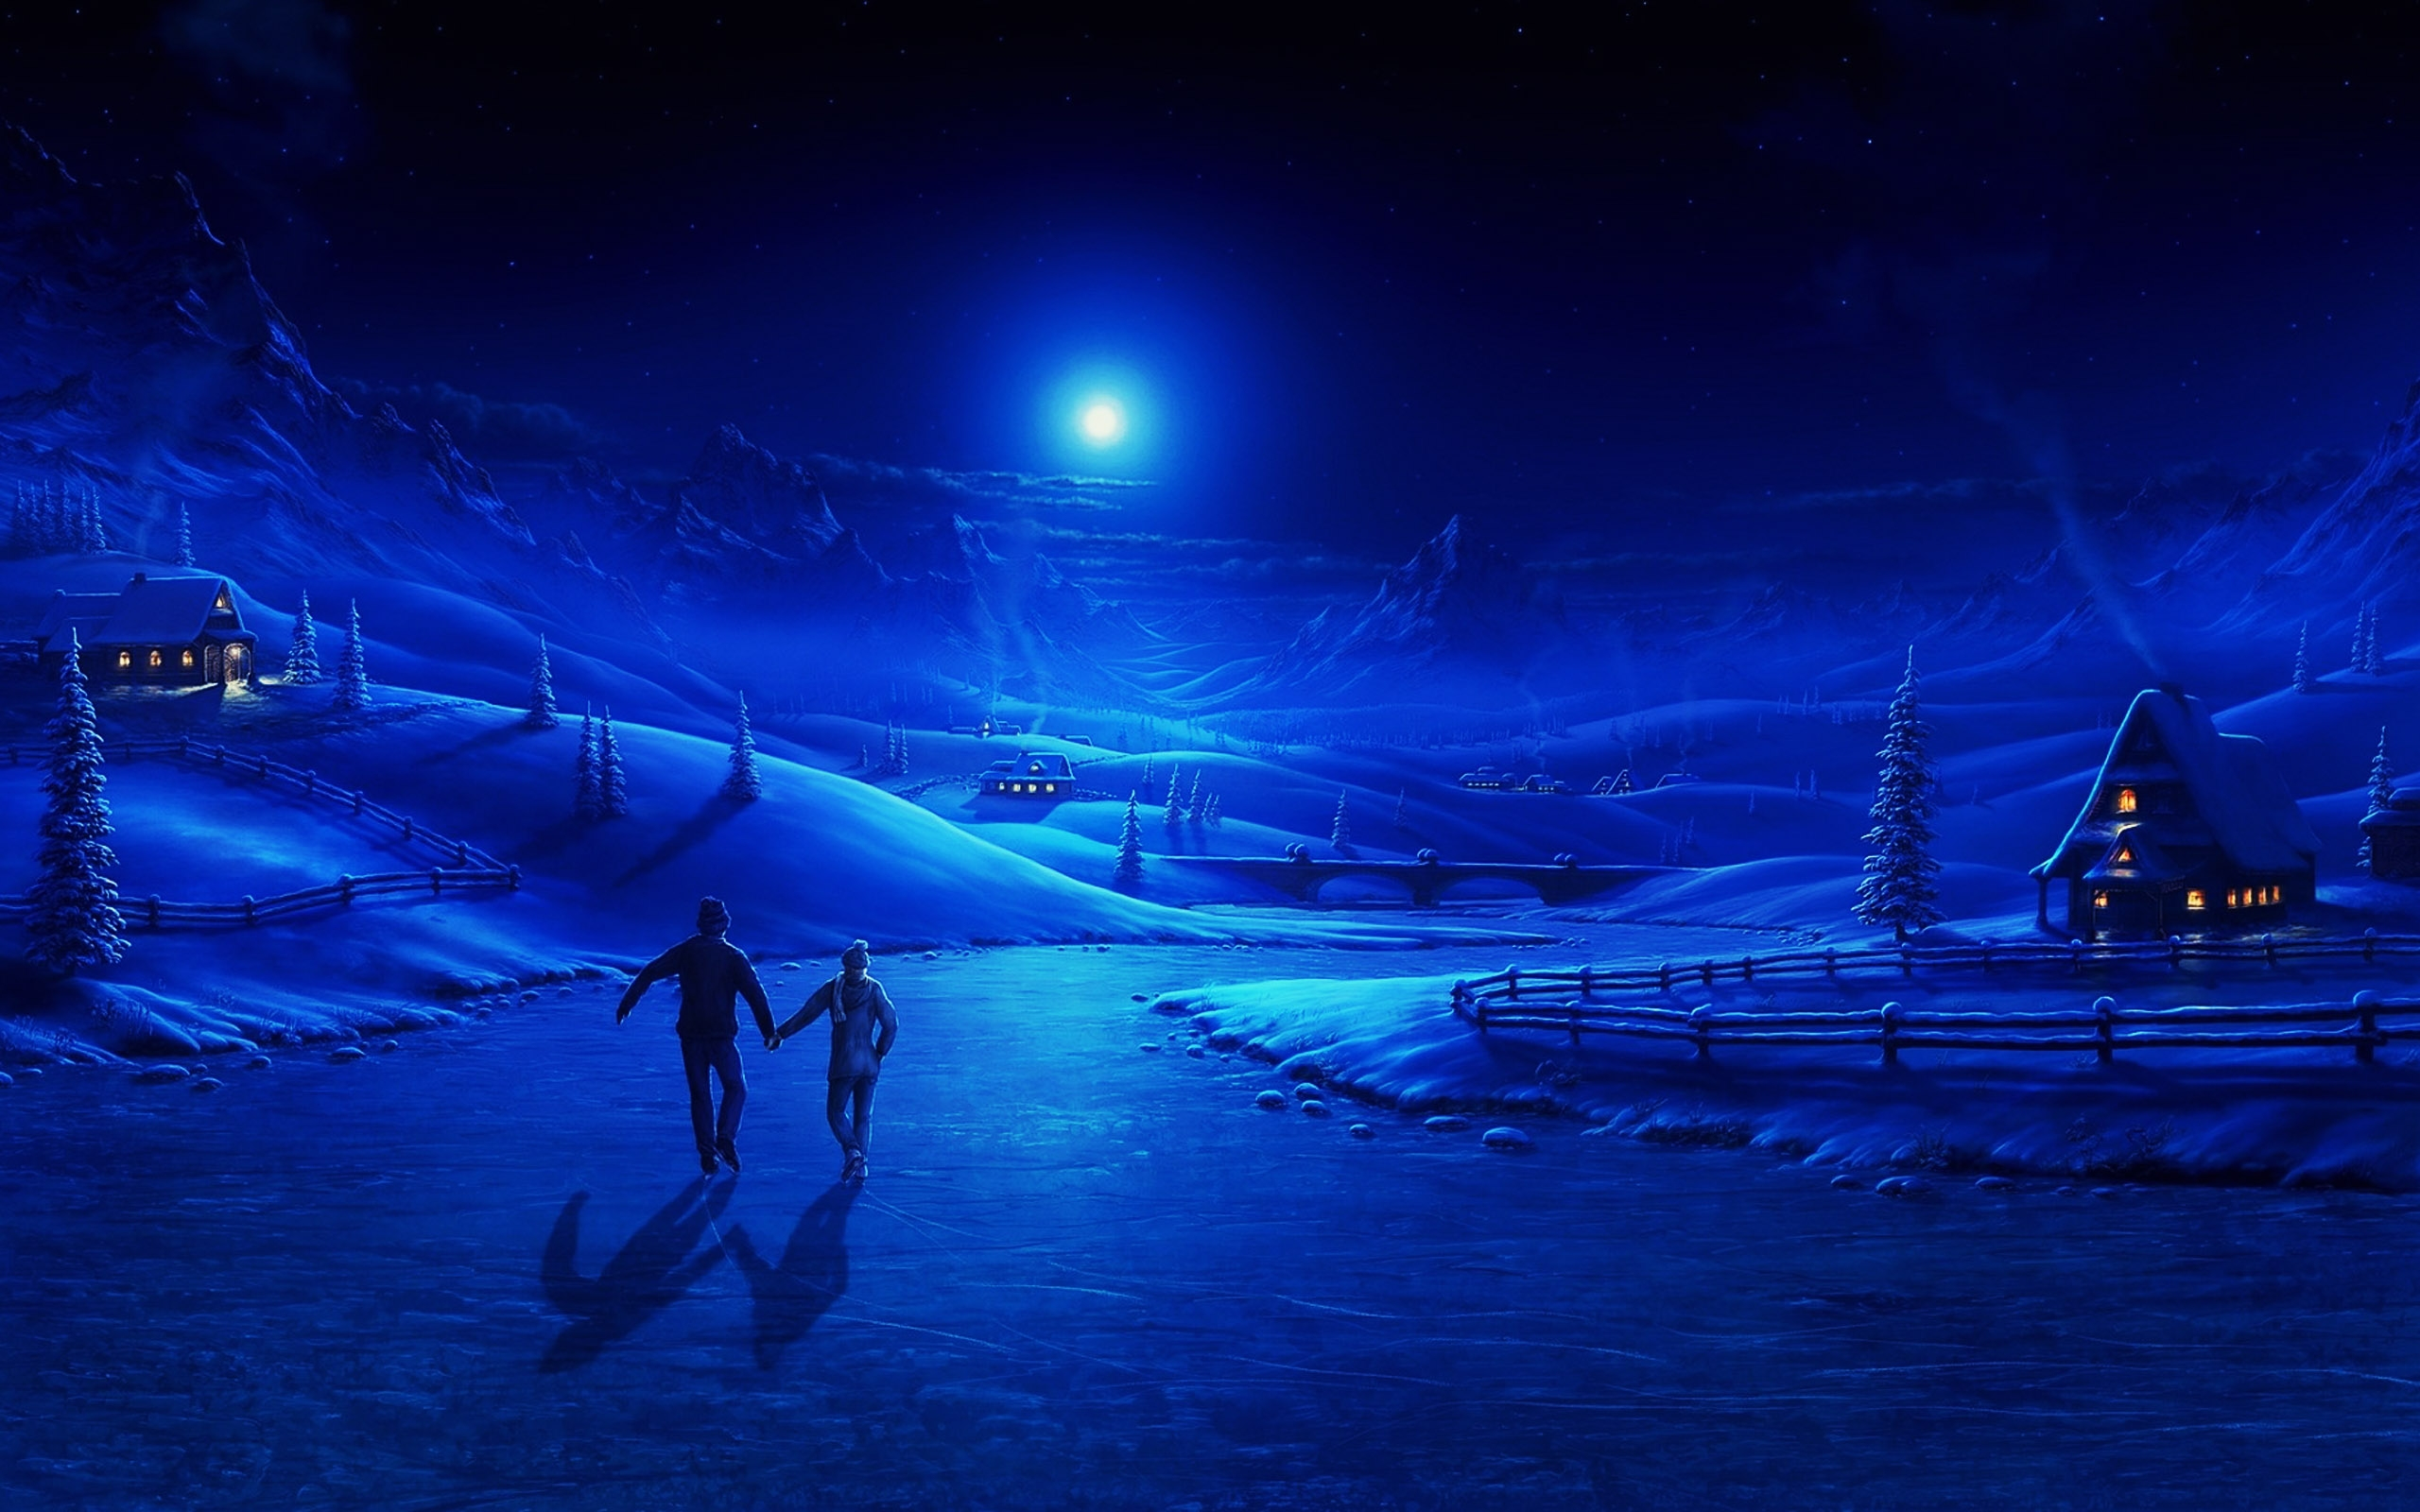 Blue Christmas Winter Night Wallpapers Paintings Christmas 2560x1600